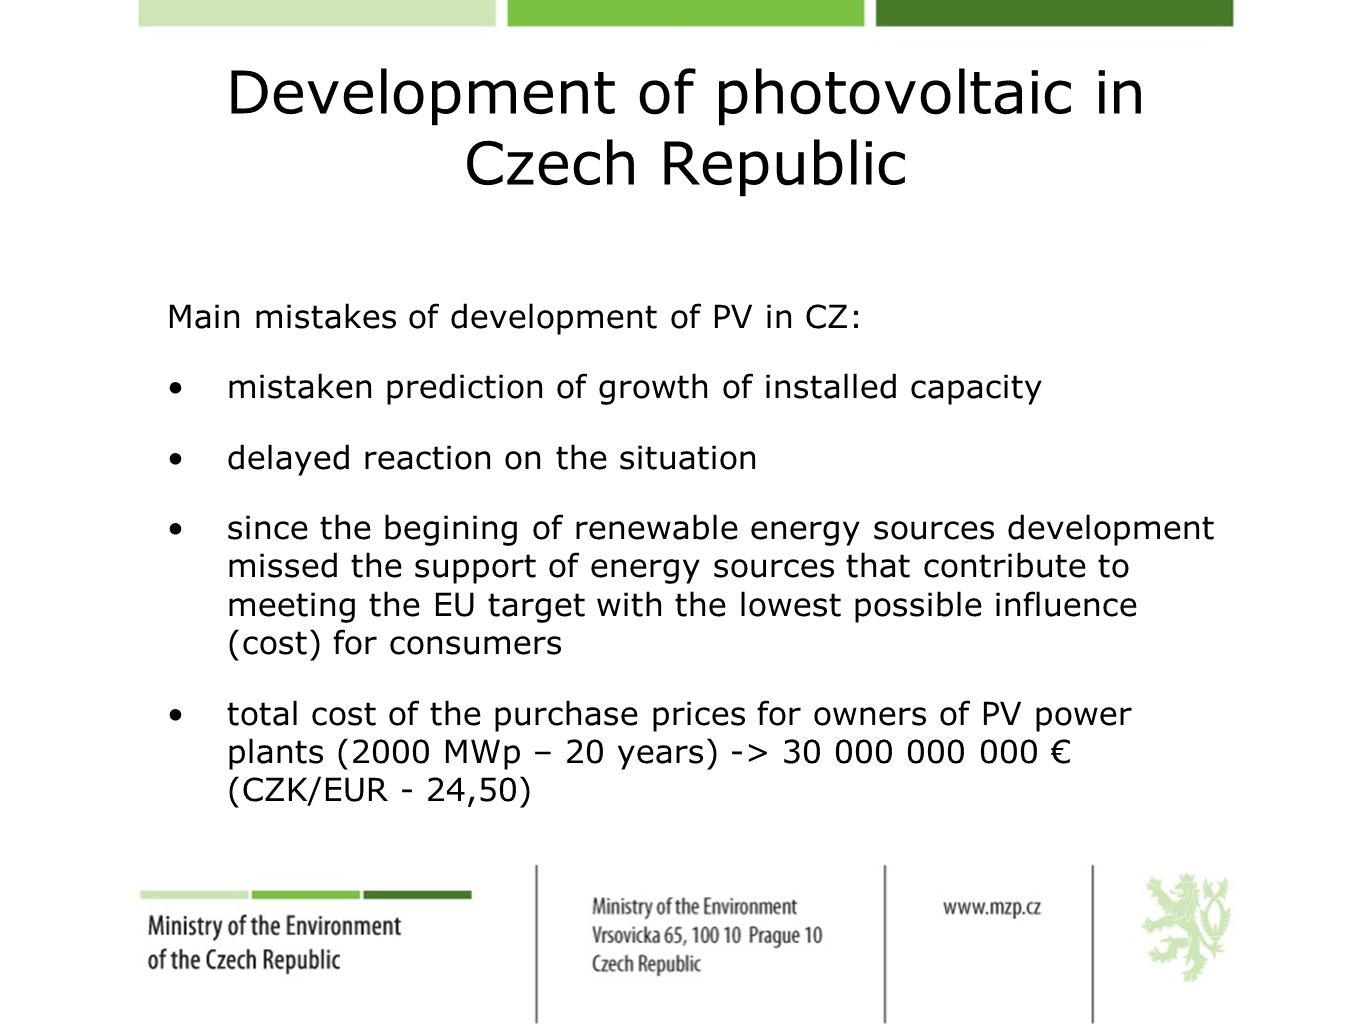 Development of photovoltaic in Czech Republic Main mistakes of development of PV in CZ: mistaken prediction of growth of installed capacity delayed reaction on the situation since the begining of renewable energy sources development missed the support of energy sources that contribute to meeting the EU target with the lowest possible influence (cost) for consumers total cost of the purchase prices for owners of PV power plants (2000 MWp – 20 years) -> 30 000 000 000 € (CZK/EUR - 24,50)